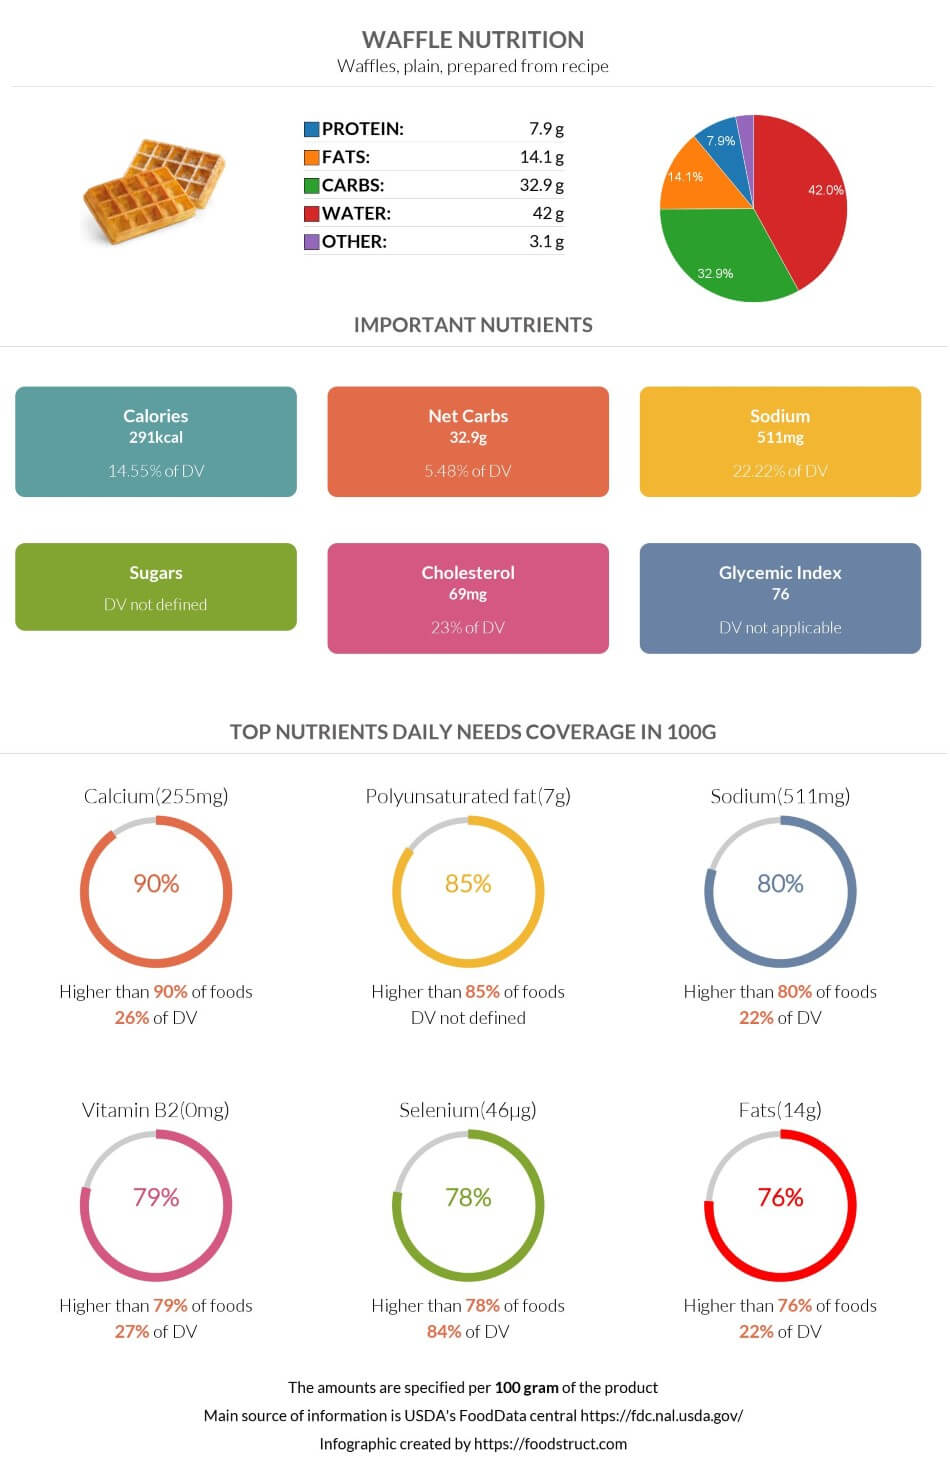 Waffle nutrition infographic